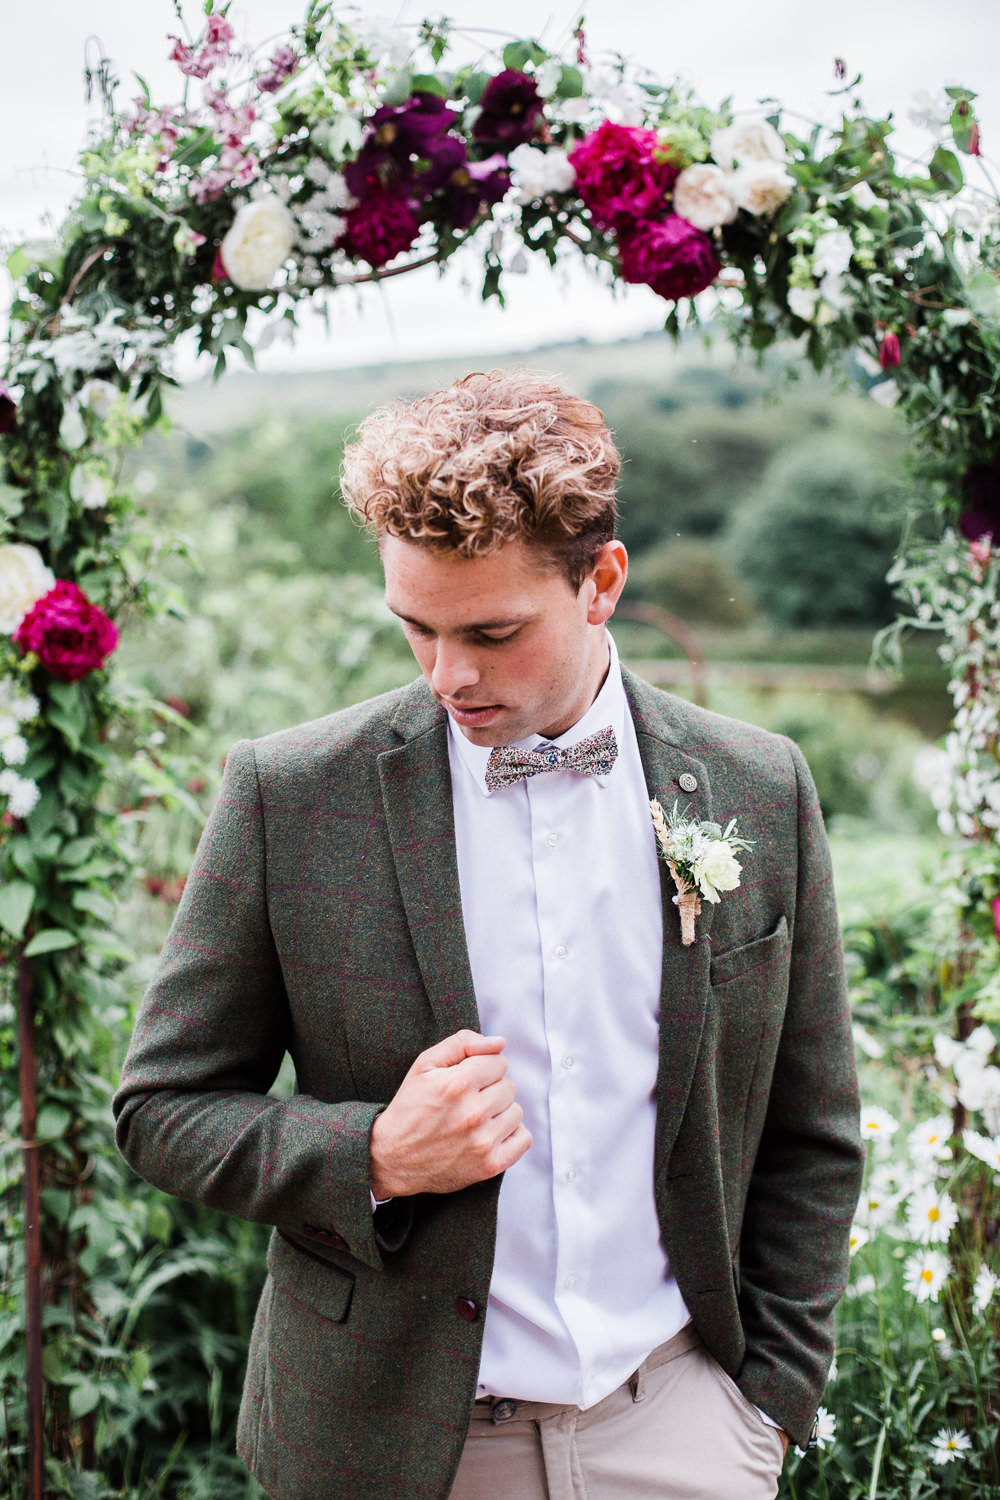 Groom Style Suit Brown Check Tweed Bow Tie Colourful Bohemian Floral Wedding Ideas Anna Beth Photography